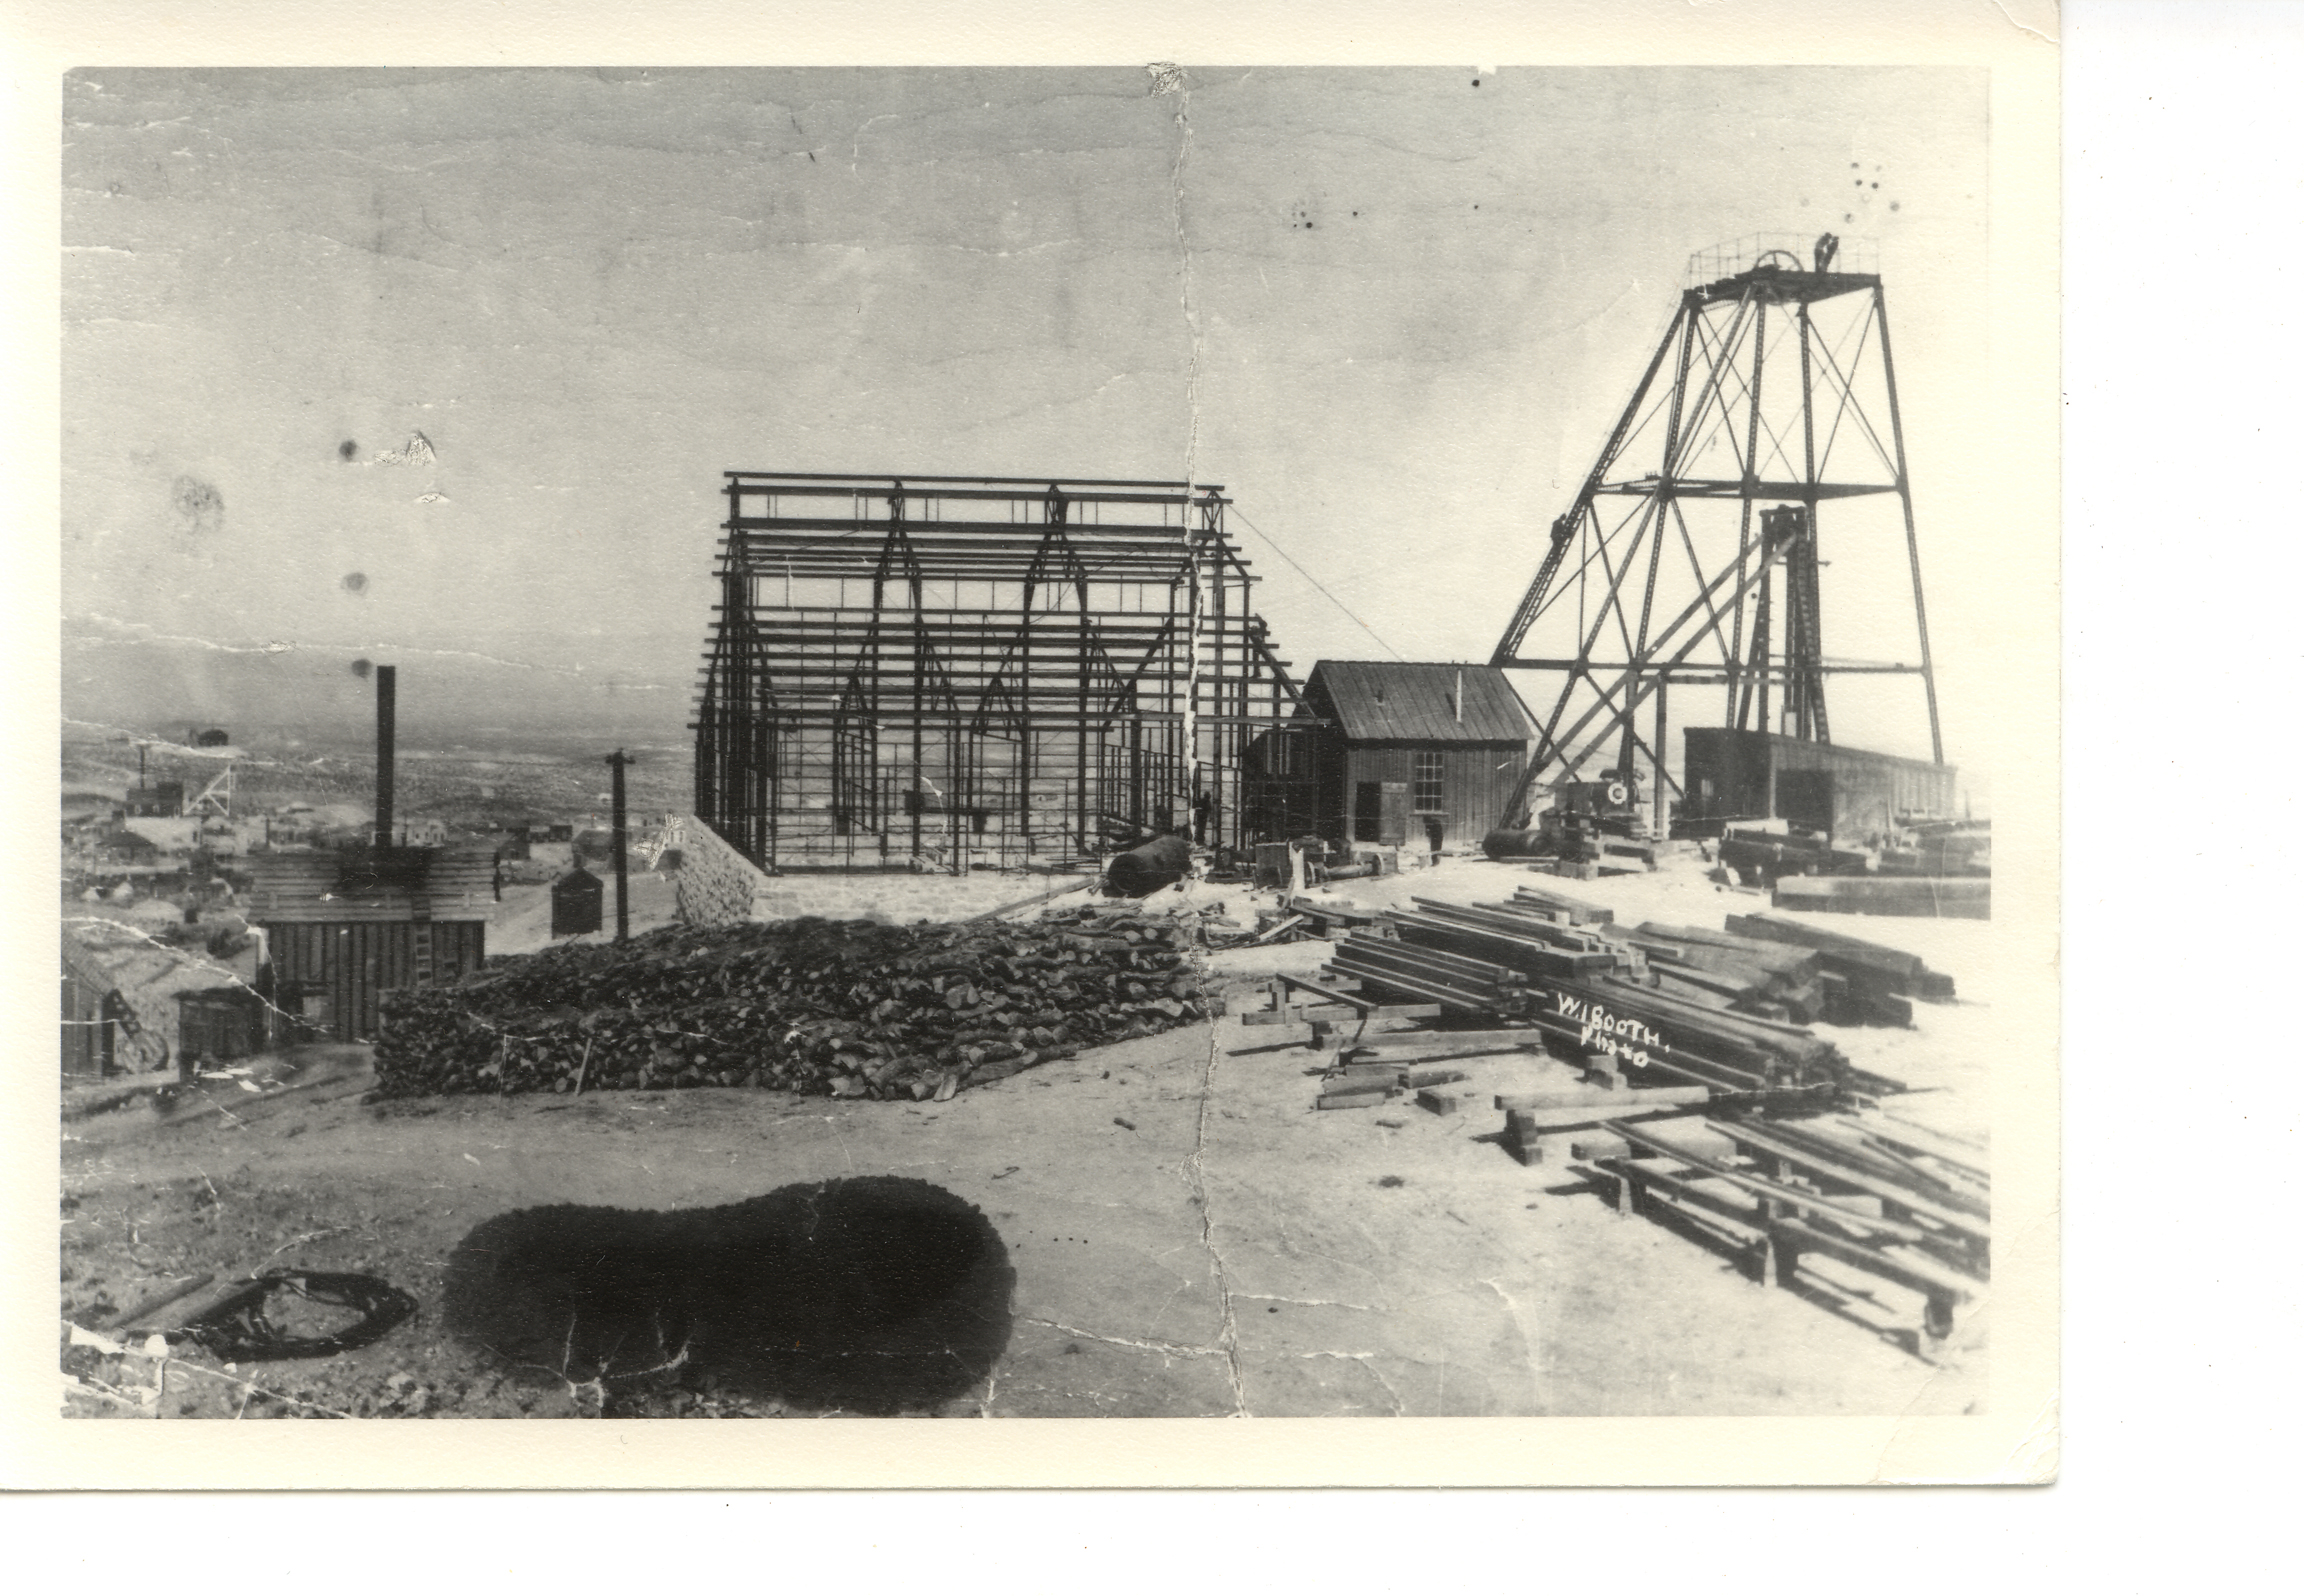 mizpah building construction 1902 300 dpi